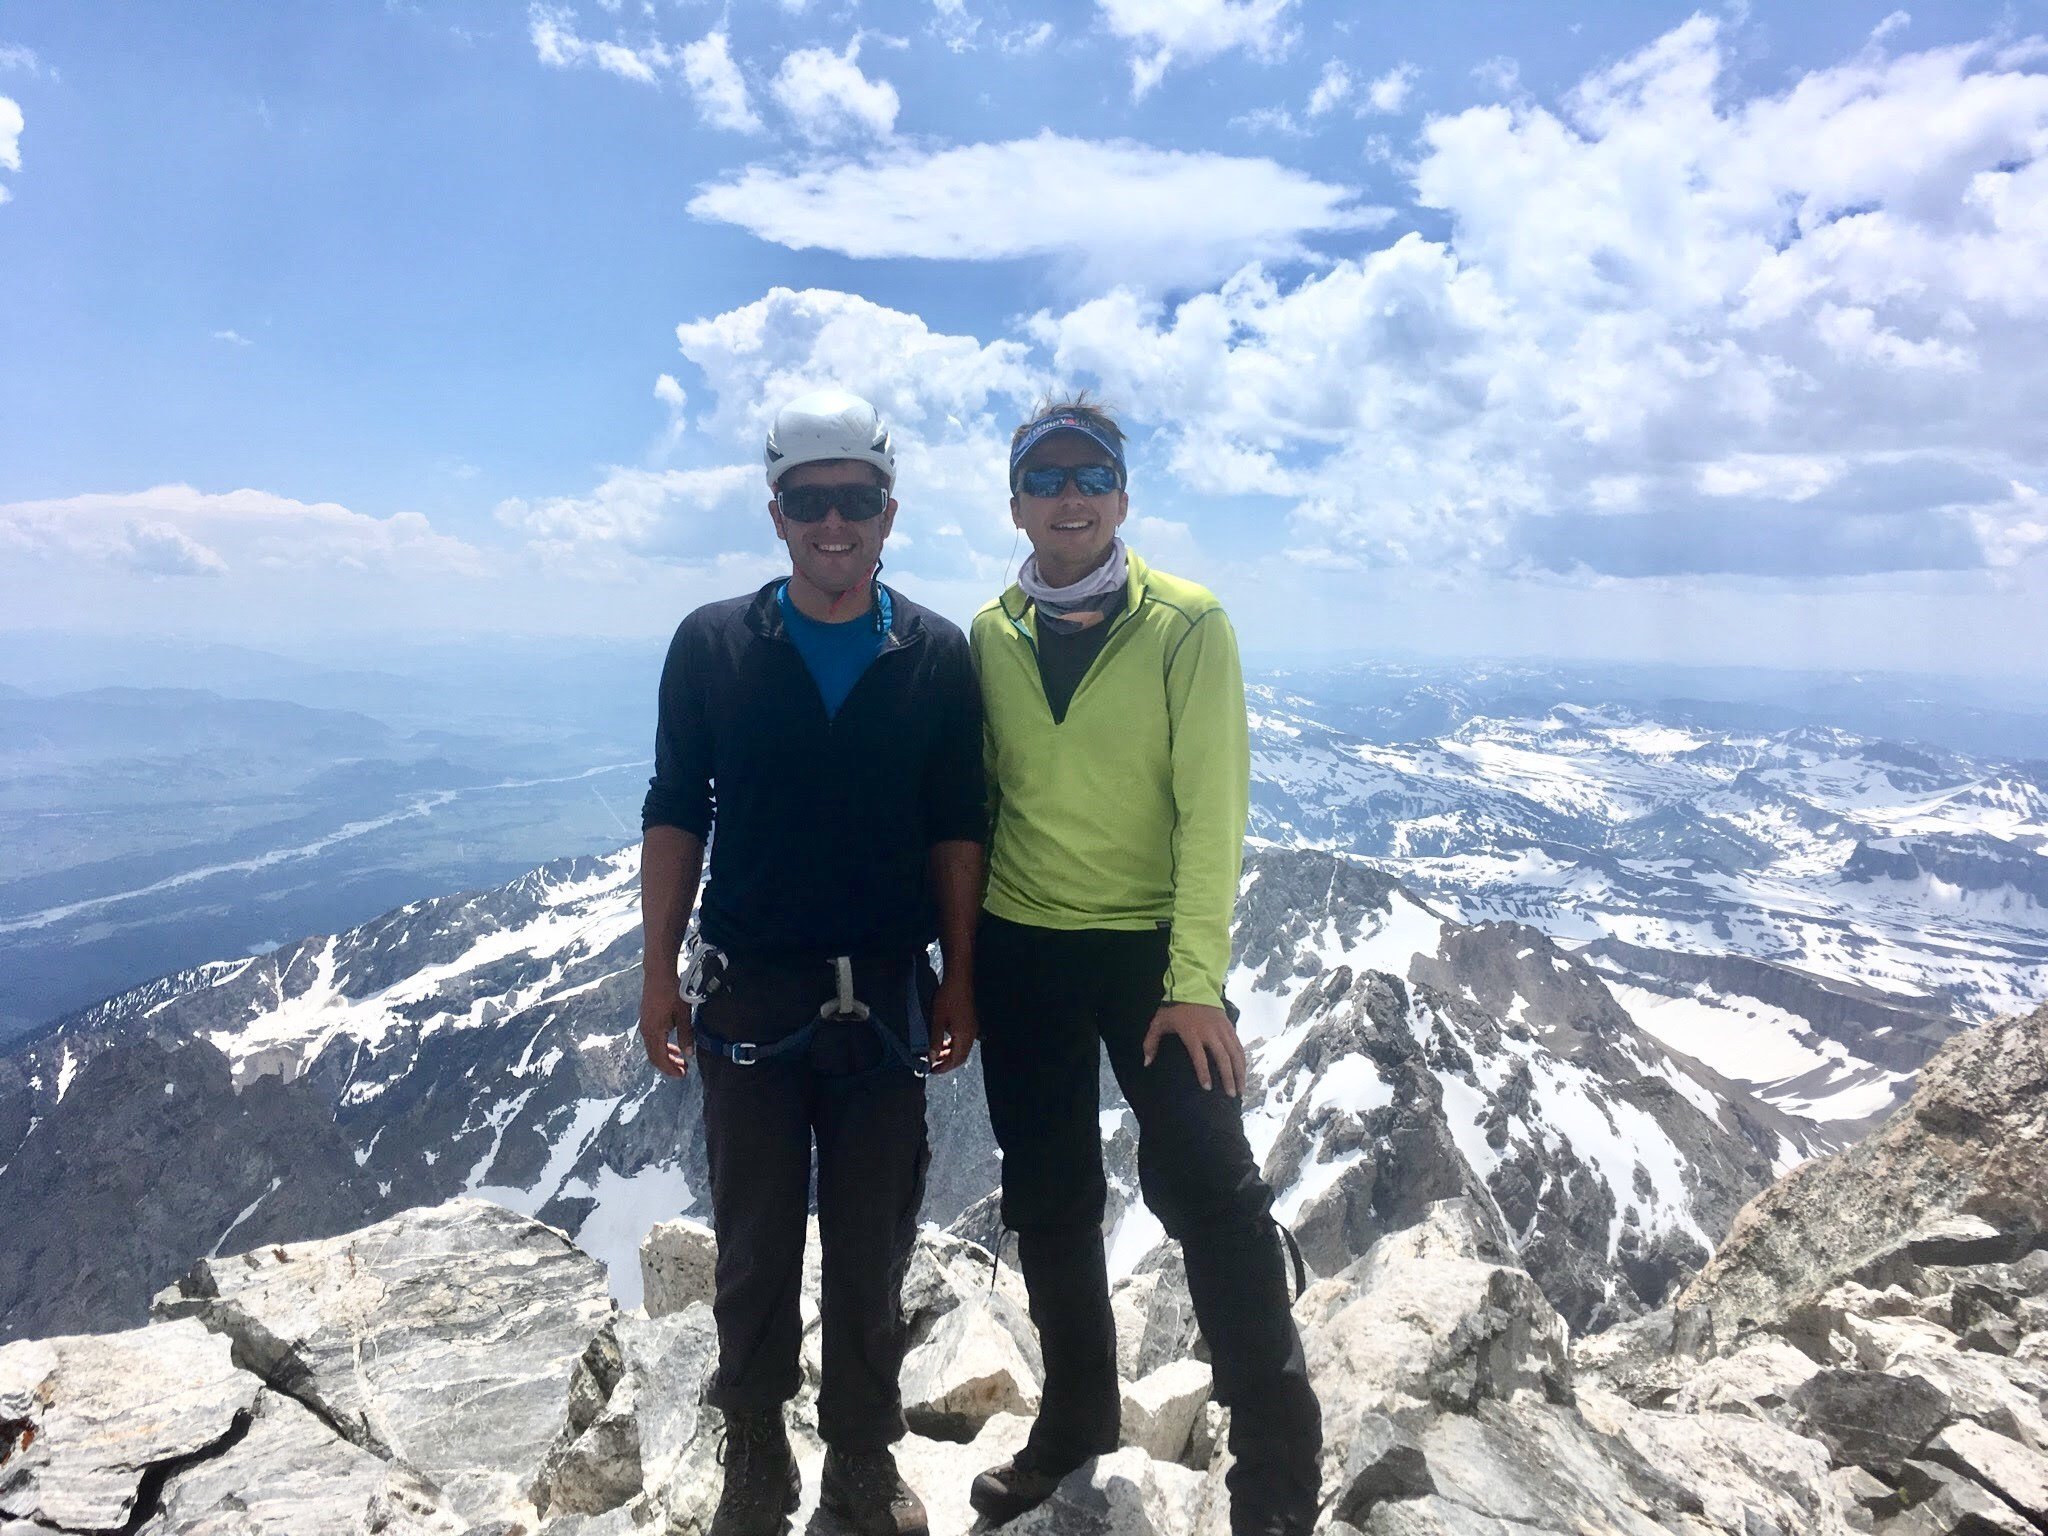 Marco and I on the summit of the Grand Teton. All smiles but completely exhausted.